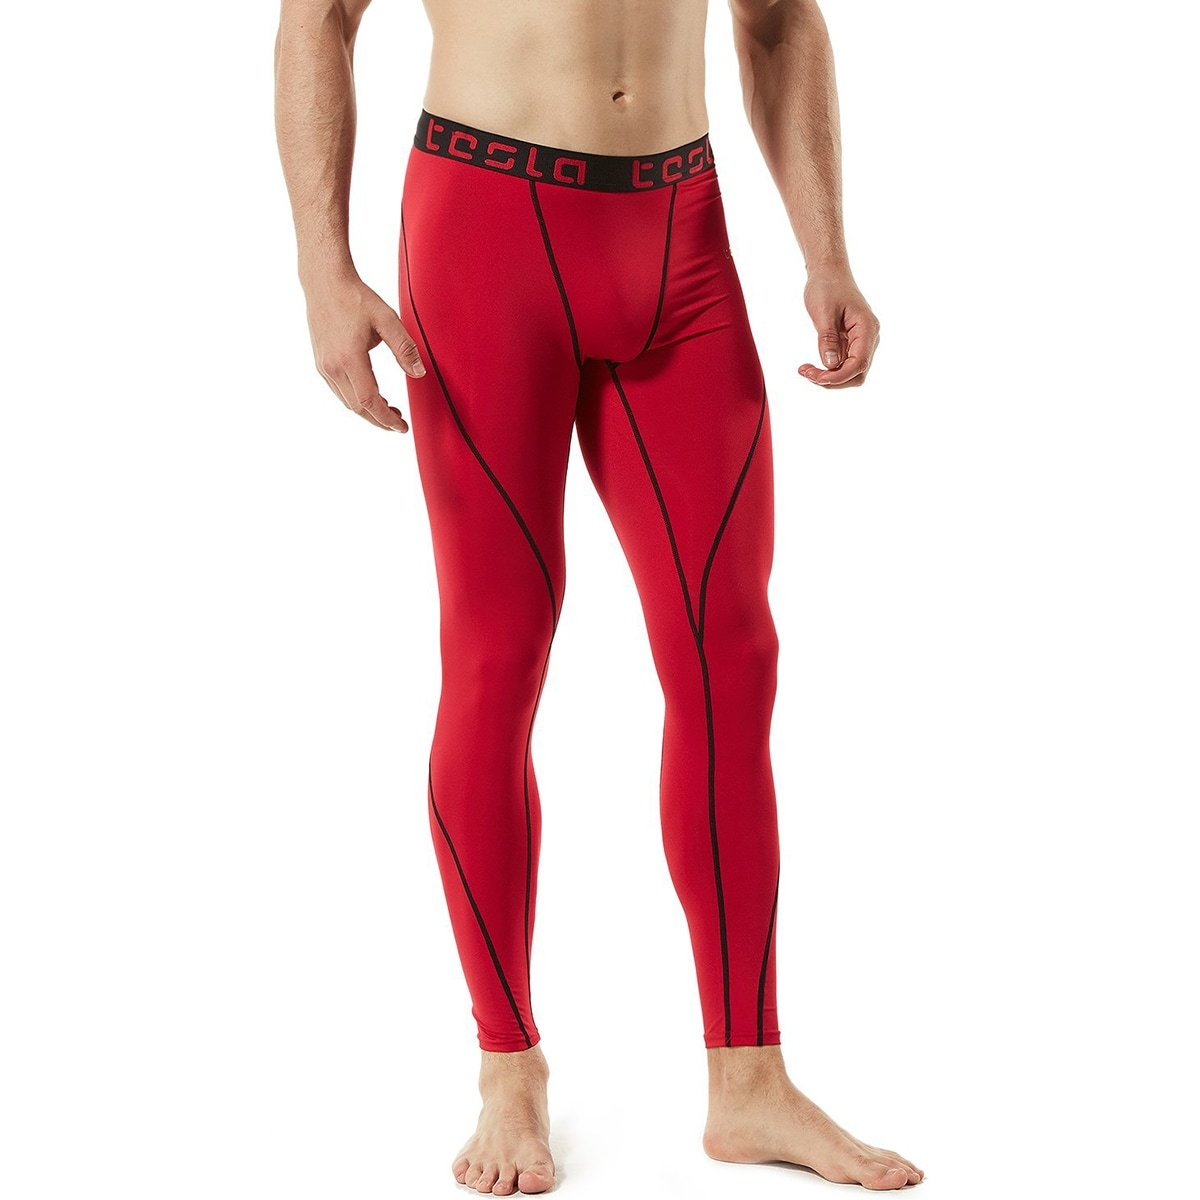 51b445d992a19 Shop TSLA Tesla MUP19 Cool Dry Baselayer Compression Pants - Red/Black -  Free Shipping On Orders Over $45 - Overstock - 27337325